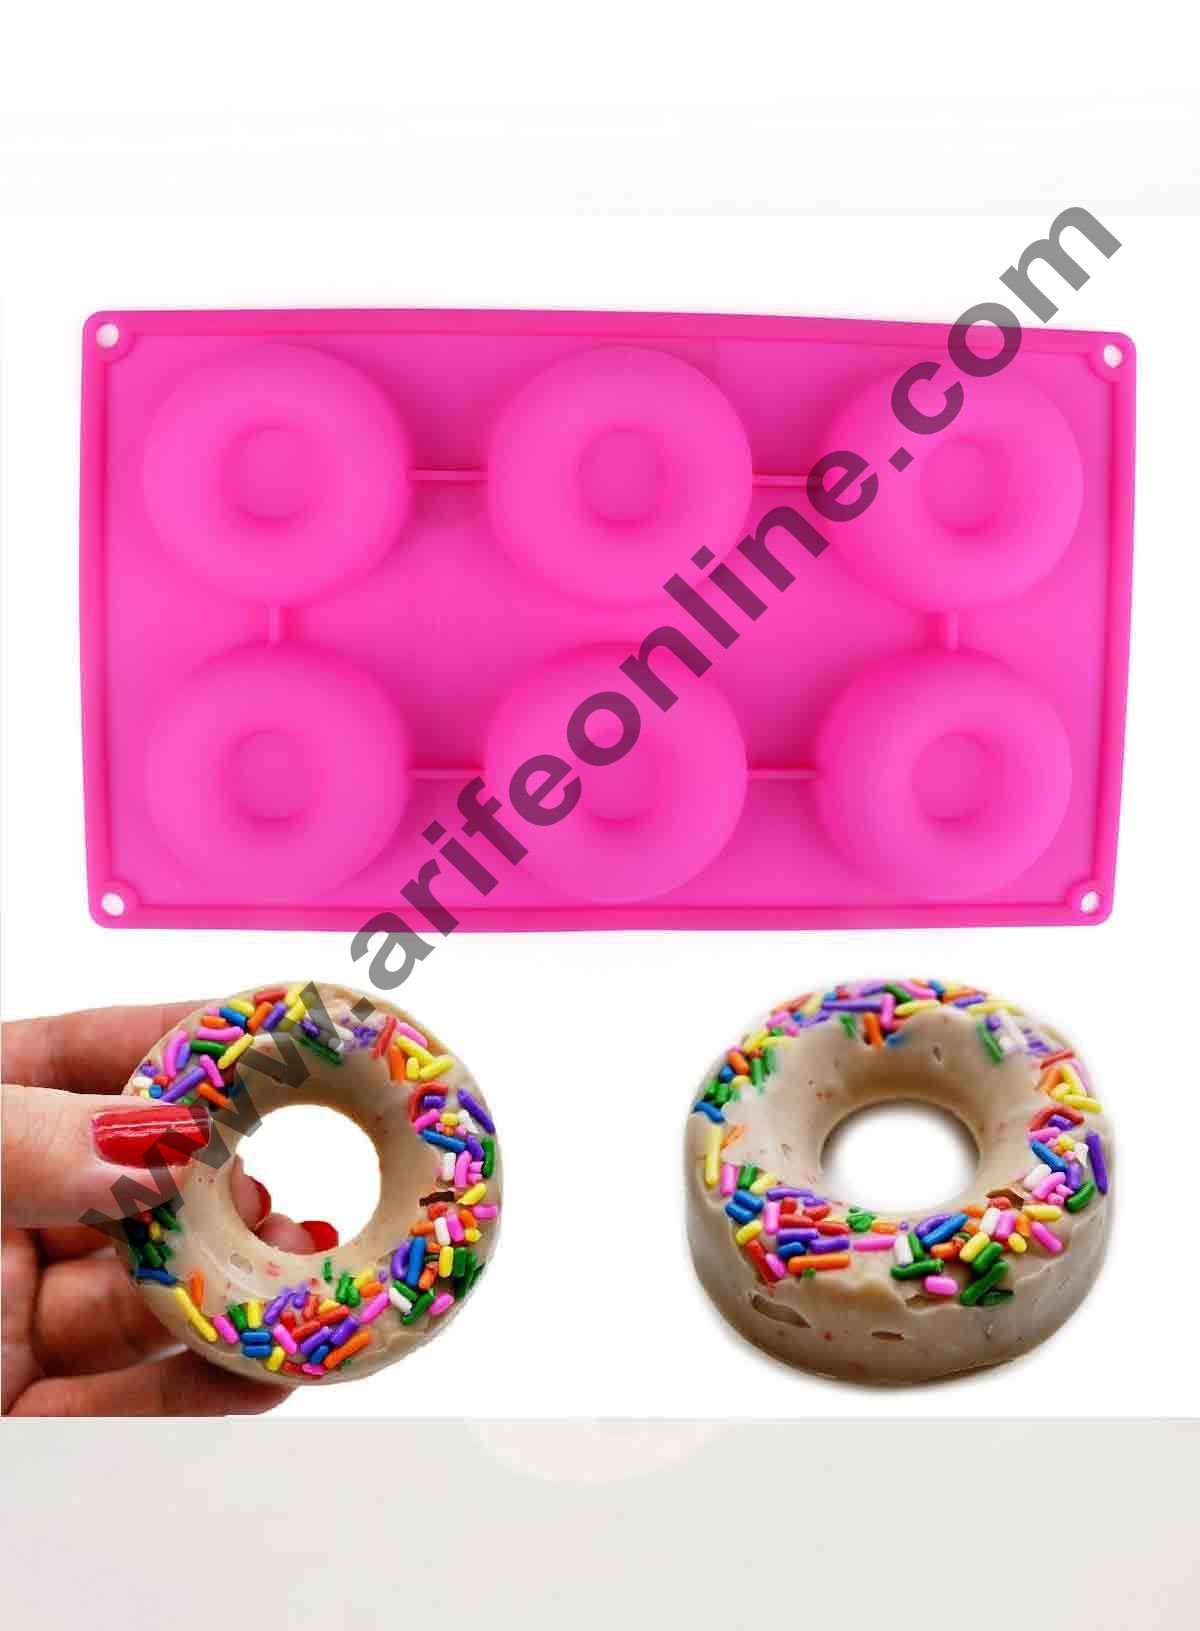 Cake Decor Silicon 6 in 1 Savarin Donut Design Cake Mould Mousse Cake Mould Silicon Moulds